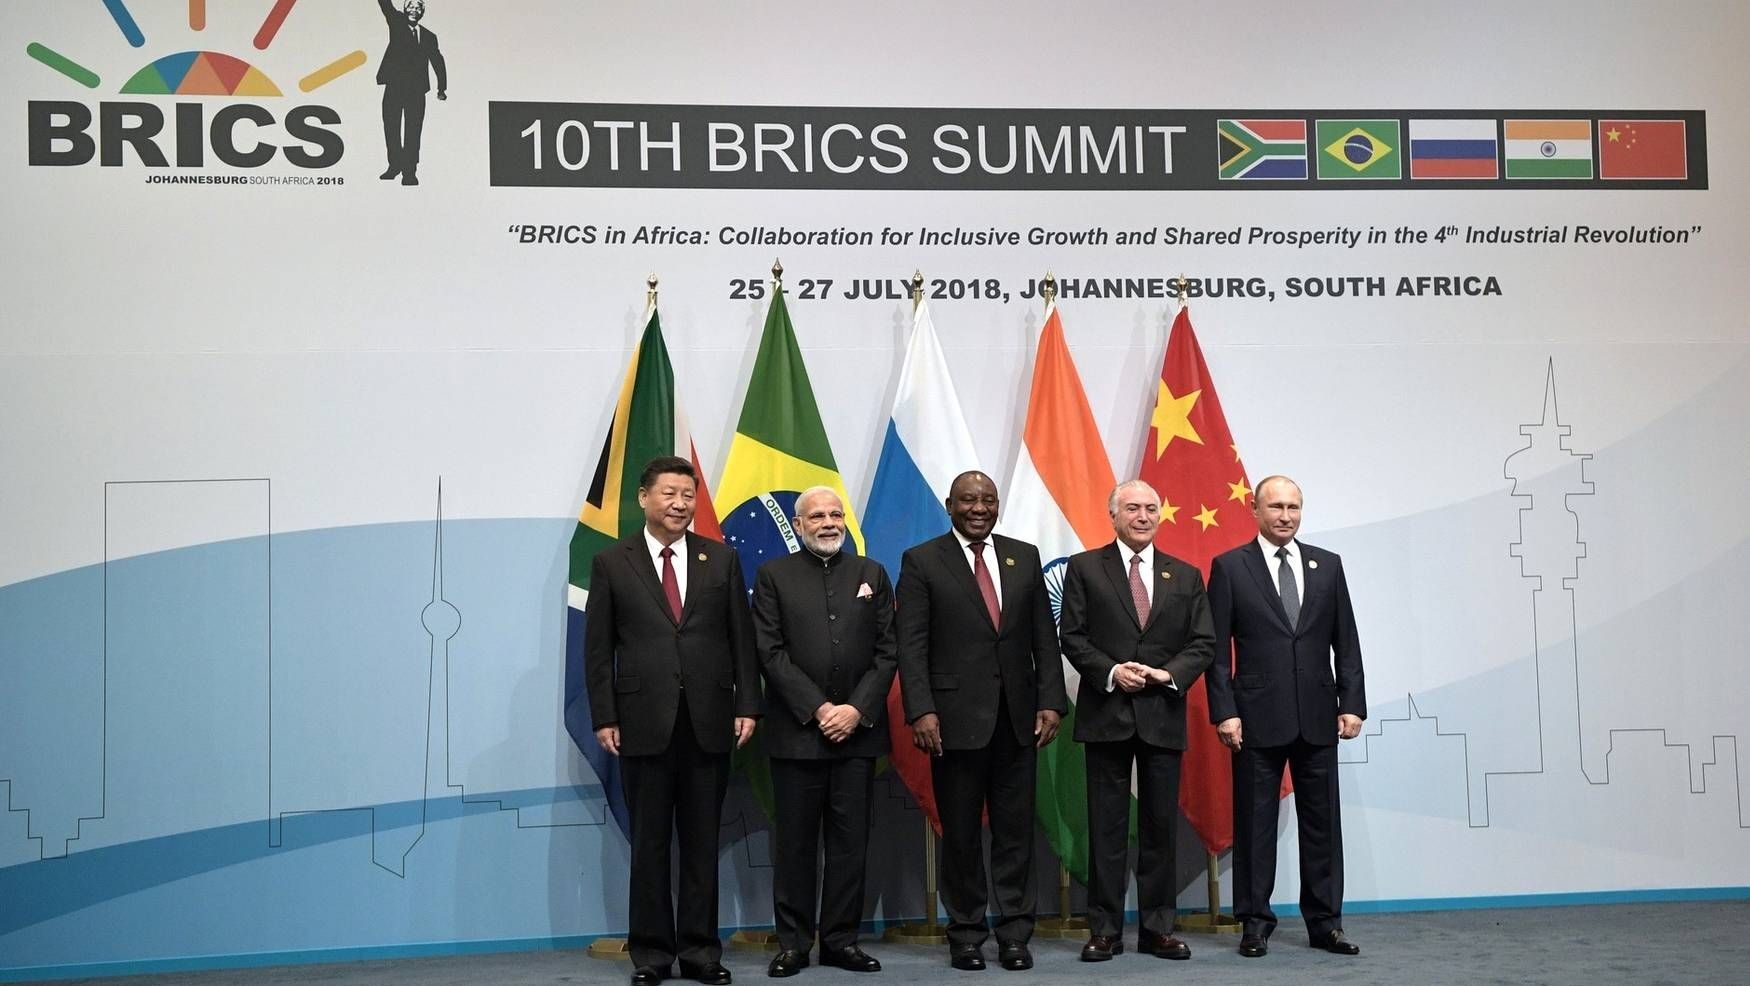 BRICS Summit: Major Banks From Member States Sign MoU on DLT Research